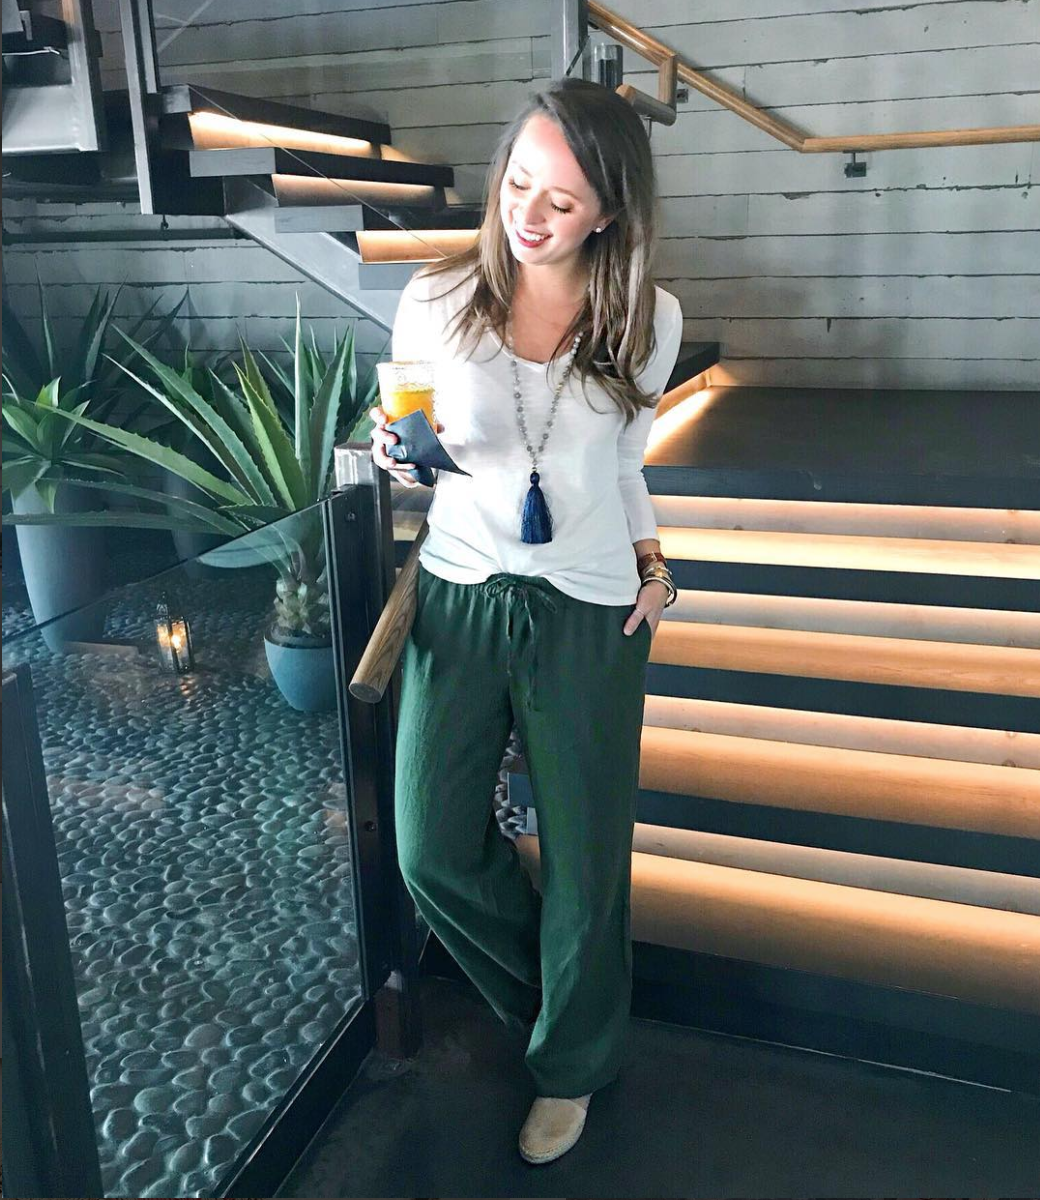 If you're looking for something casual, flowy pants are where it's at. (Image via @jennrog/southernanchors.com)